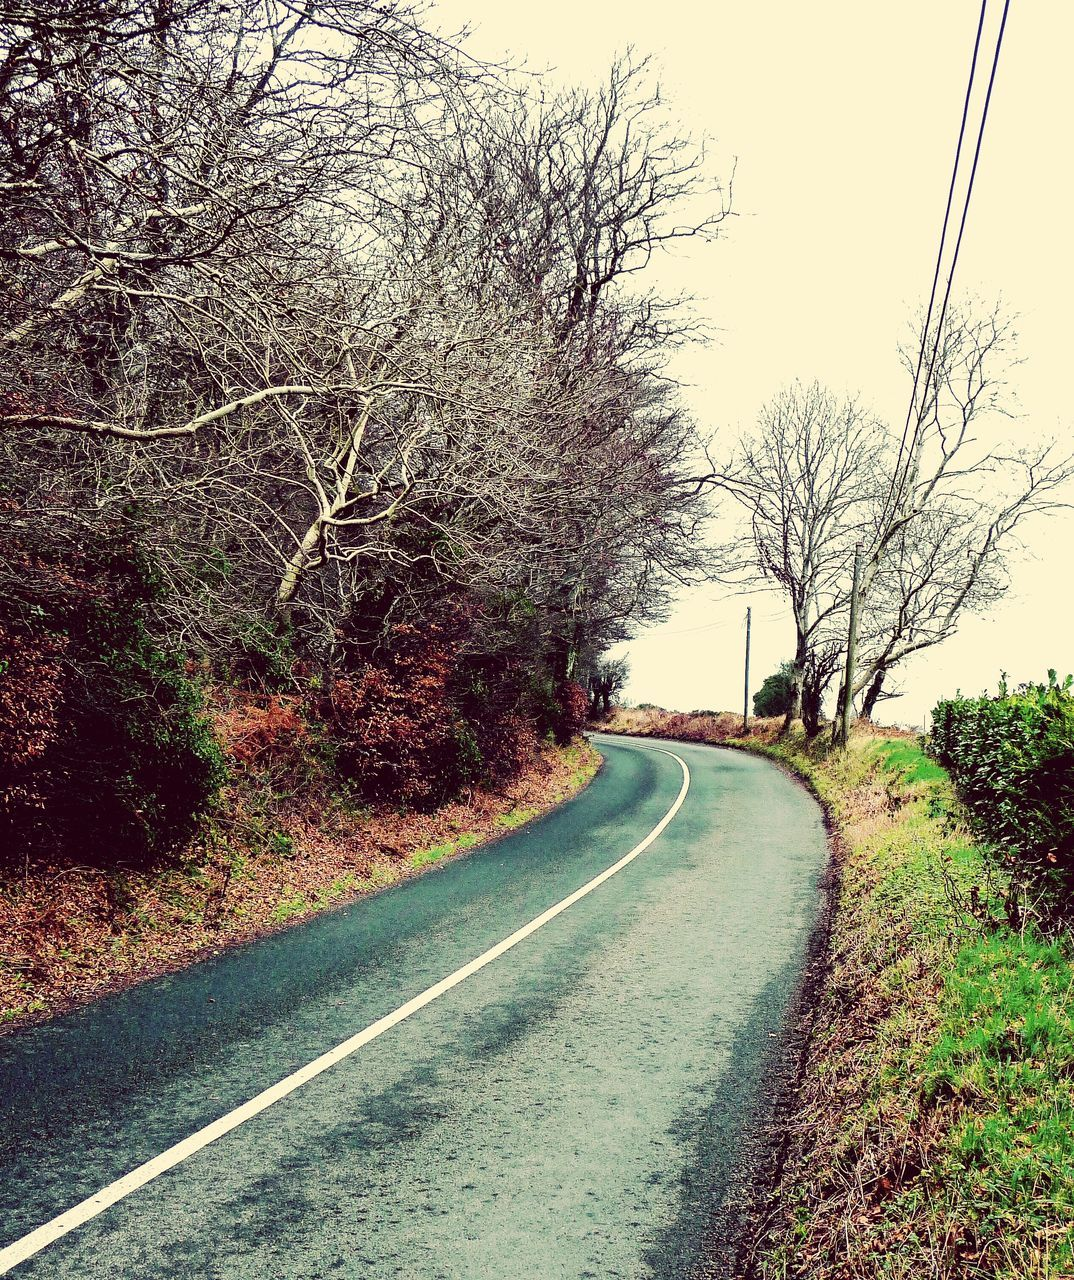 road, tree, the way forward, bare tree, diminishing perspective, transportation, nature, day, clear sky, outdoors, tranquility, branch, no people, landscape, curve, beauty in nature, sky